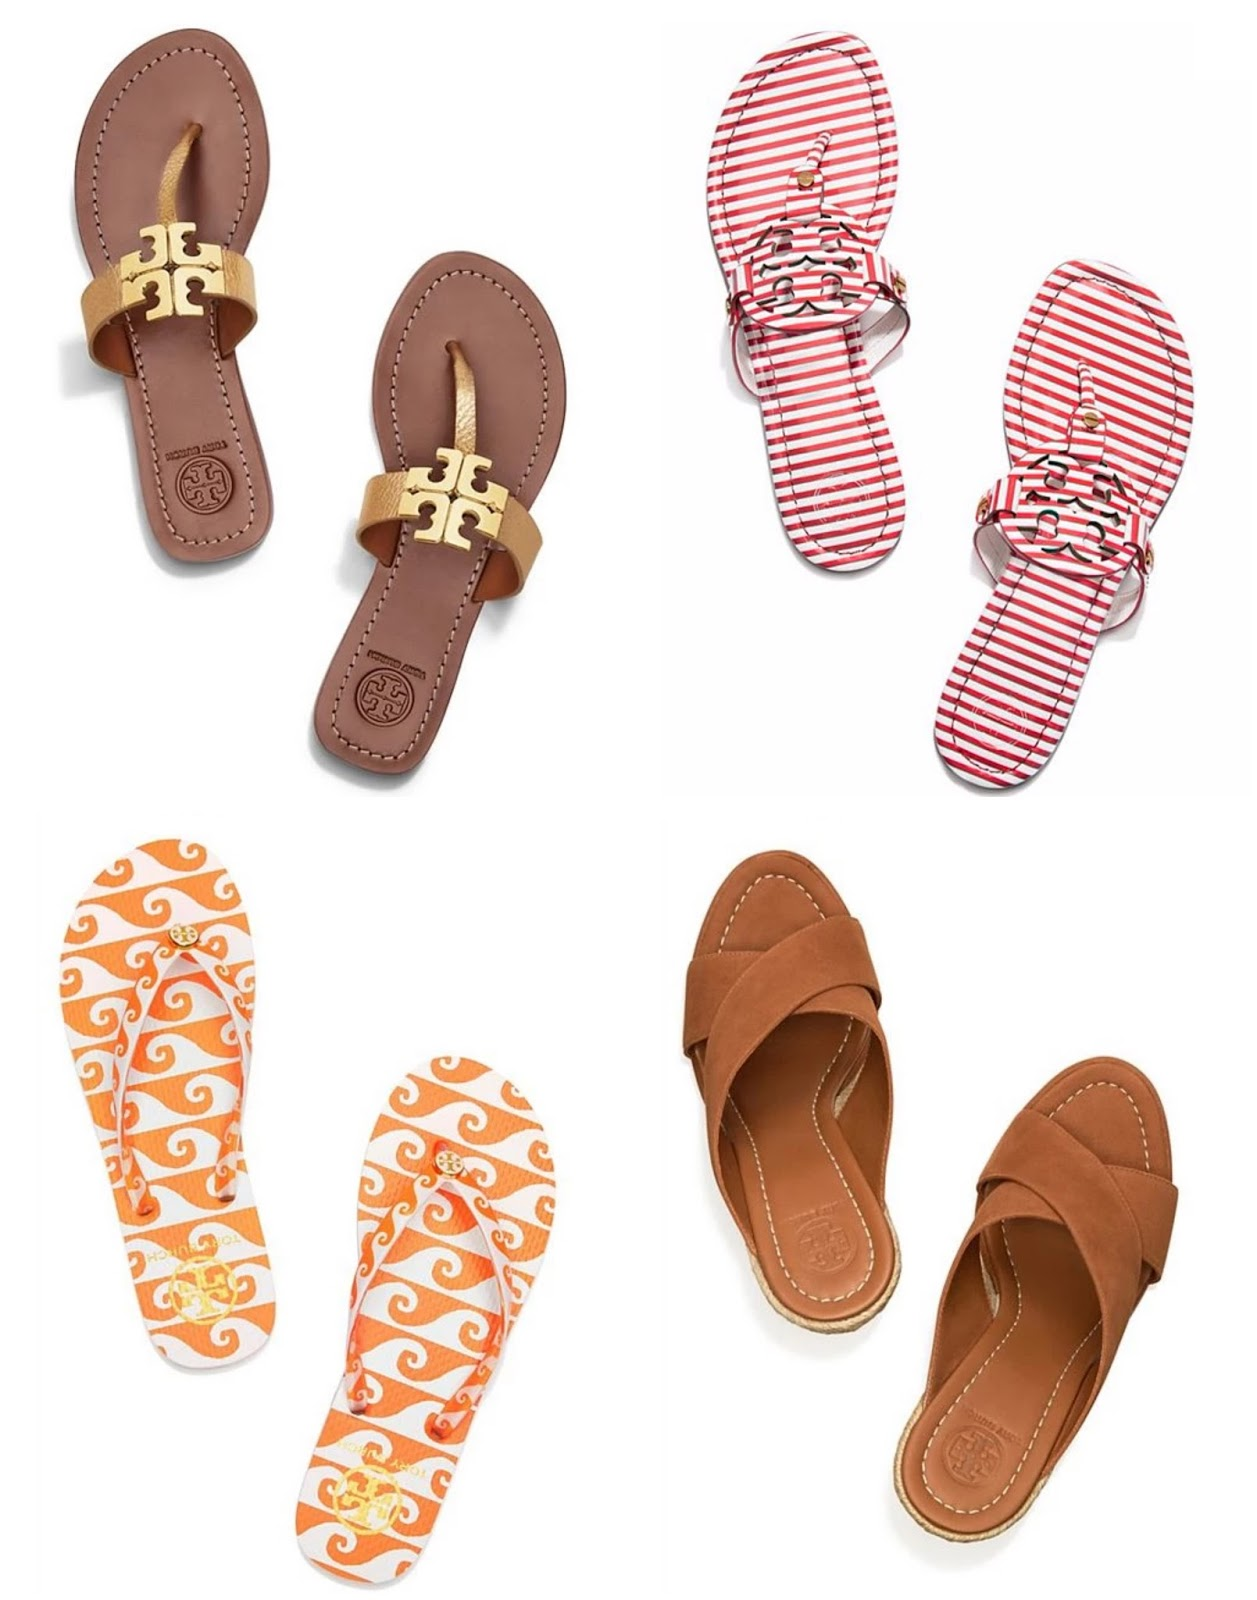 a035792f3 Tory Burch just marked down a bunch of sandals + free shipping and returns!  (And don t forget about the private sale ----  http   shopstyle.it l kYPN)